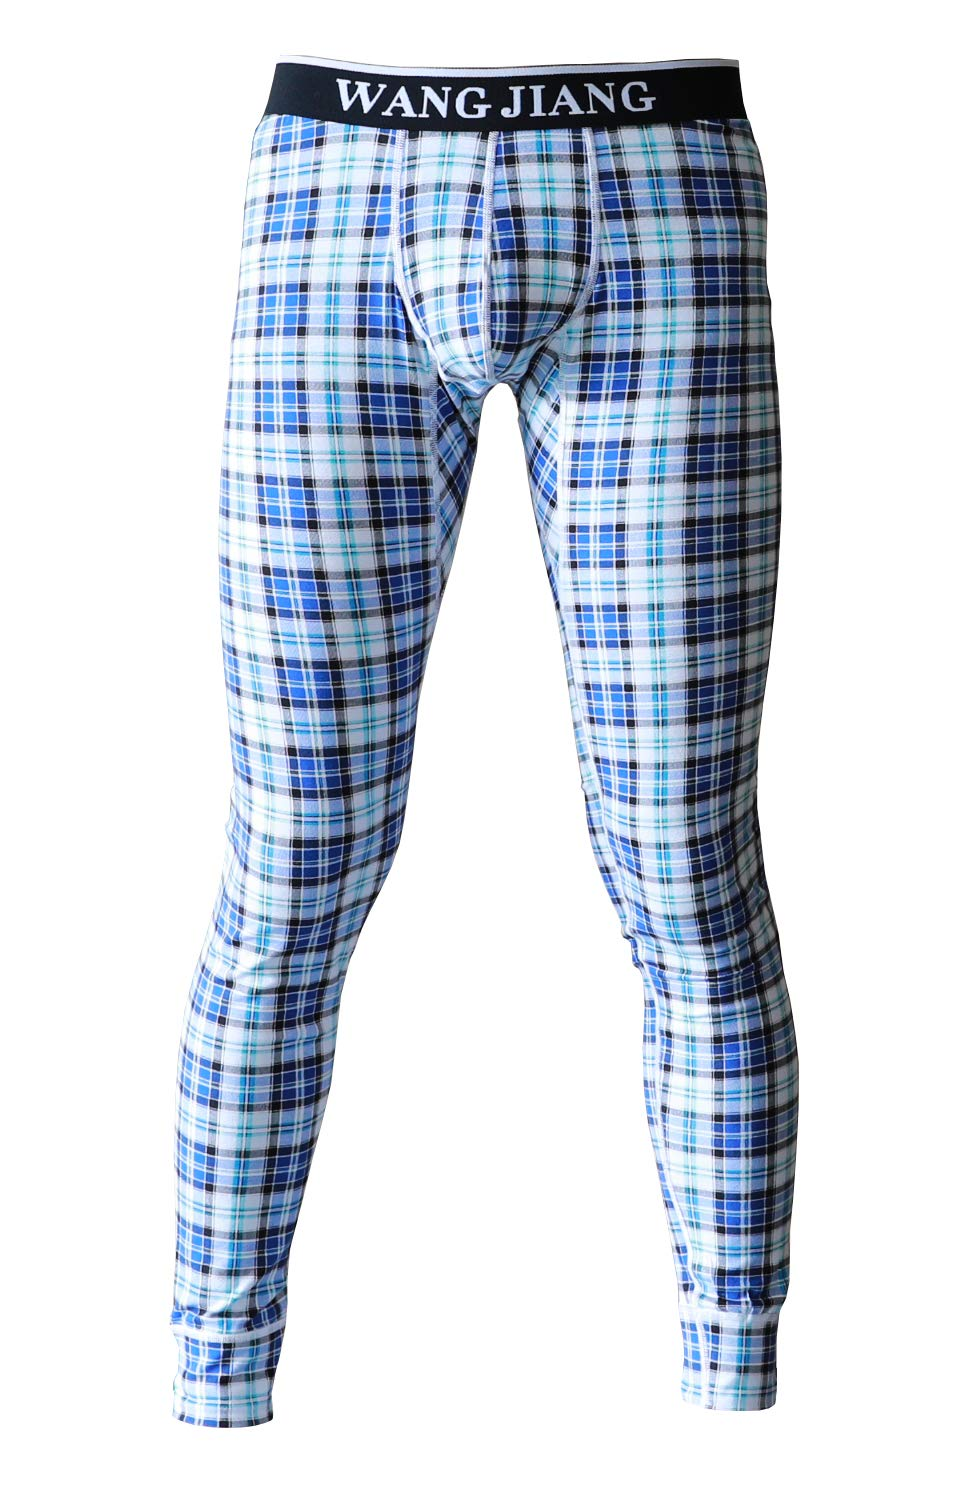 ARCITON Men's Low Rise Leggings Long Johns Thermal Pant US XL/with Tag XXL(Waist: 38''- 40'') Plaid Blue by ARCITON